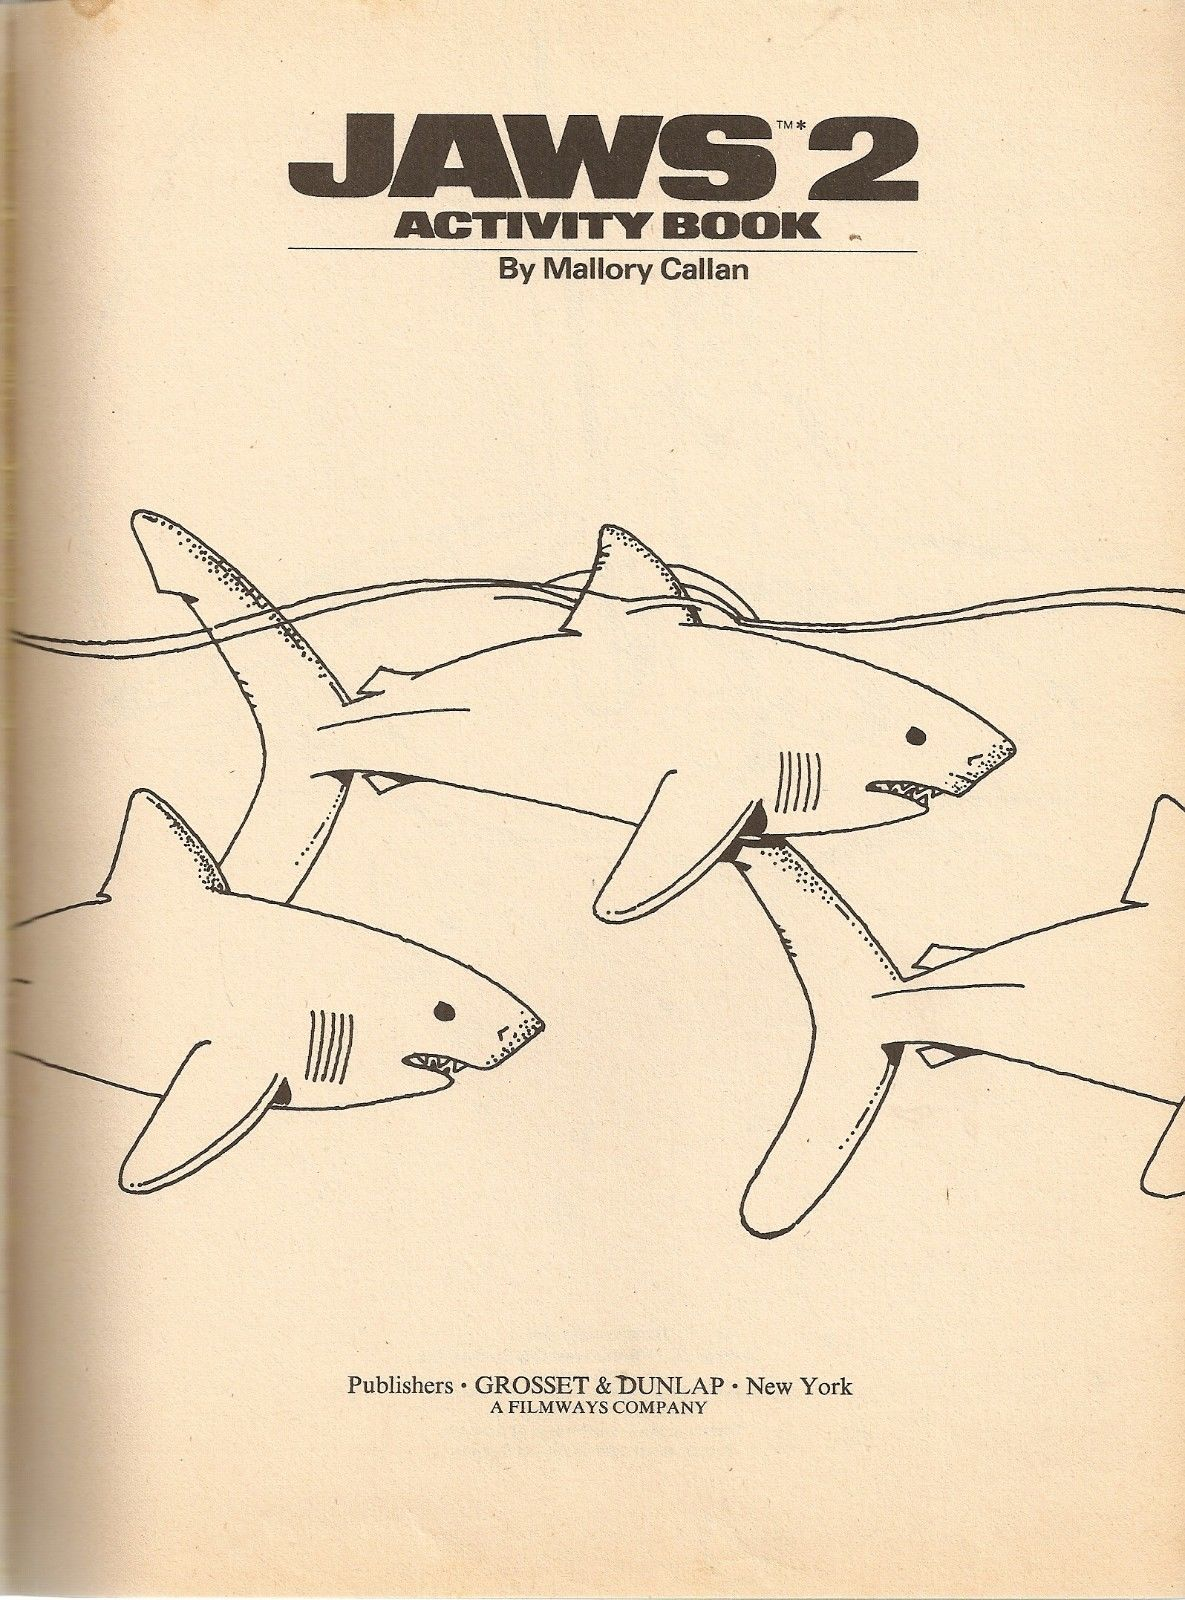 jaws 2 activity book grosset and dunlap 1978 2 warps to neptune